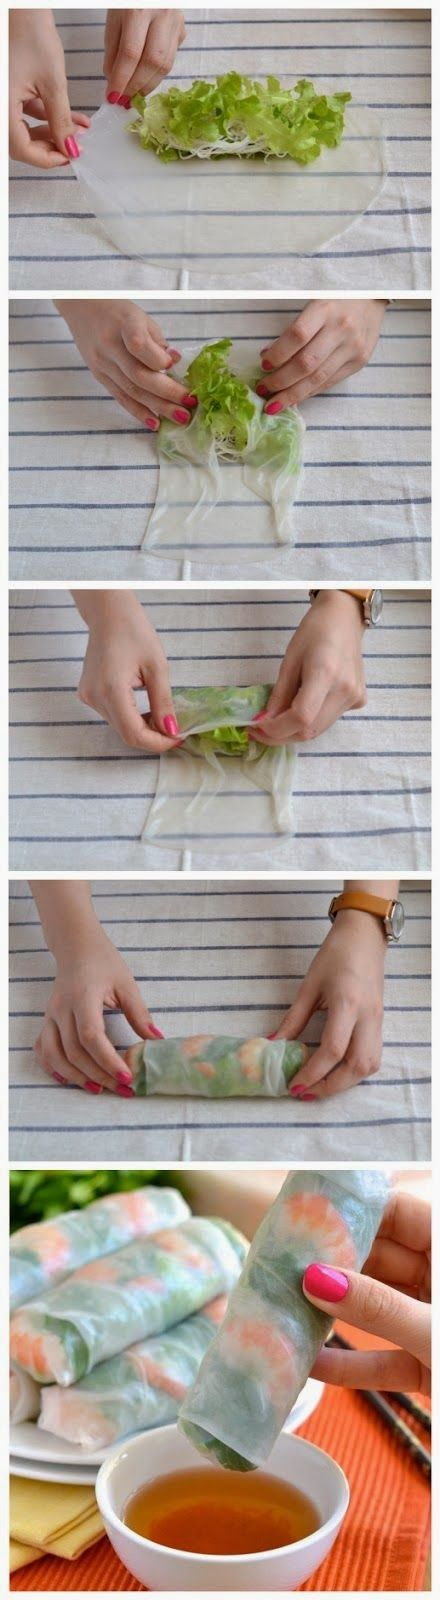 How to fold salad wraps